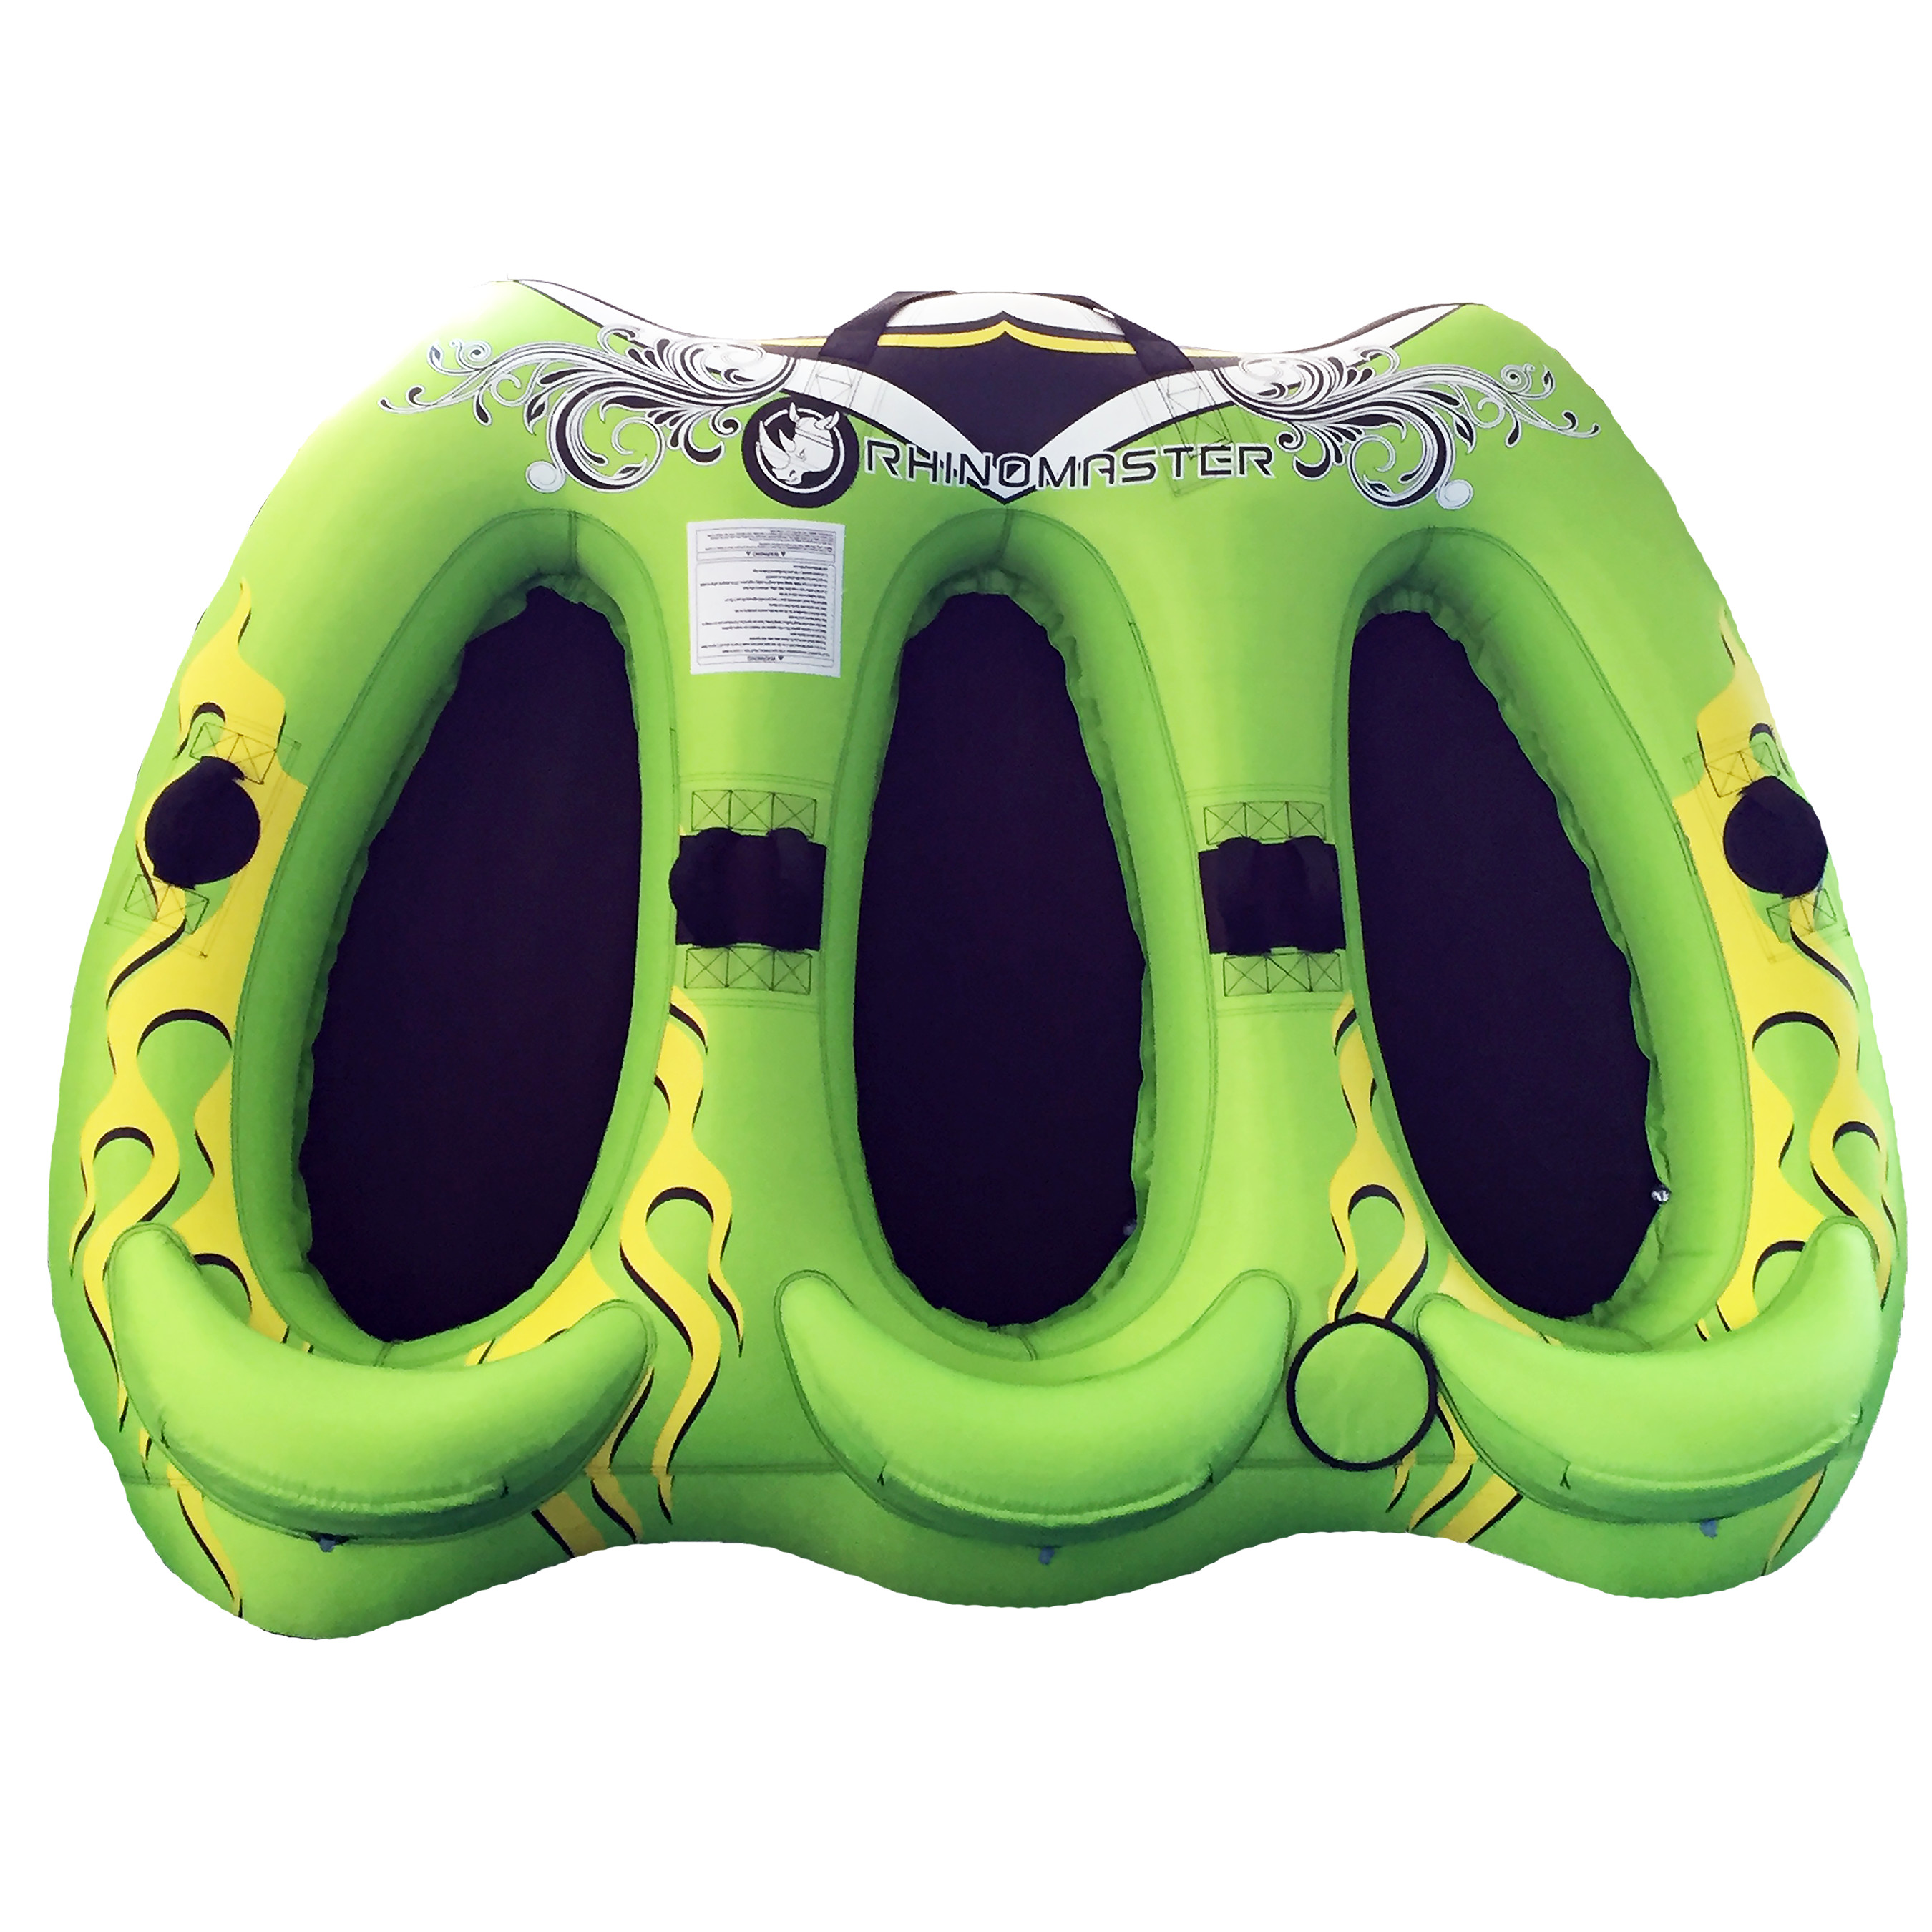 Click here to buy RhinoMaster Tough Viperfish Three 3-person Inflatable Towable with Rugged Construction for Lake and Ocean Boating by Blue Wave Products.